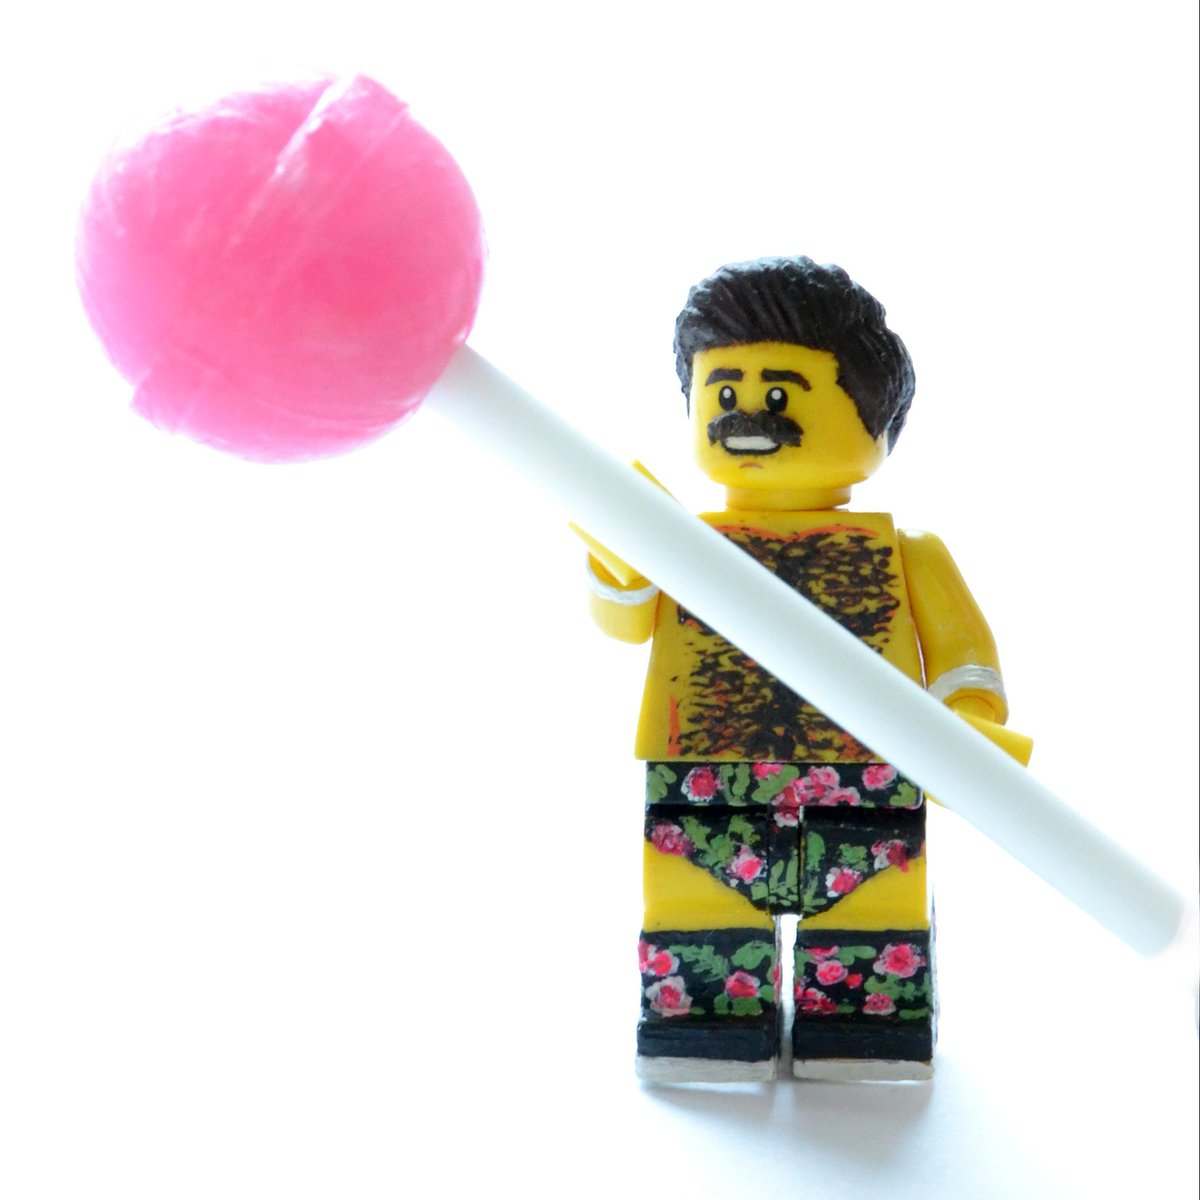 #Lego Joey Ryan celebrates #NationalLollipopDay  <br>http://pic.twitter.com/LrD8rEbN0X